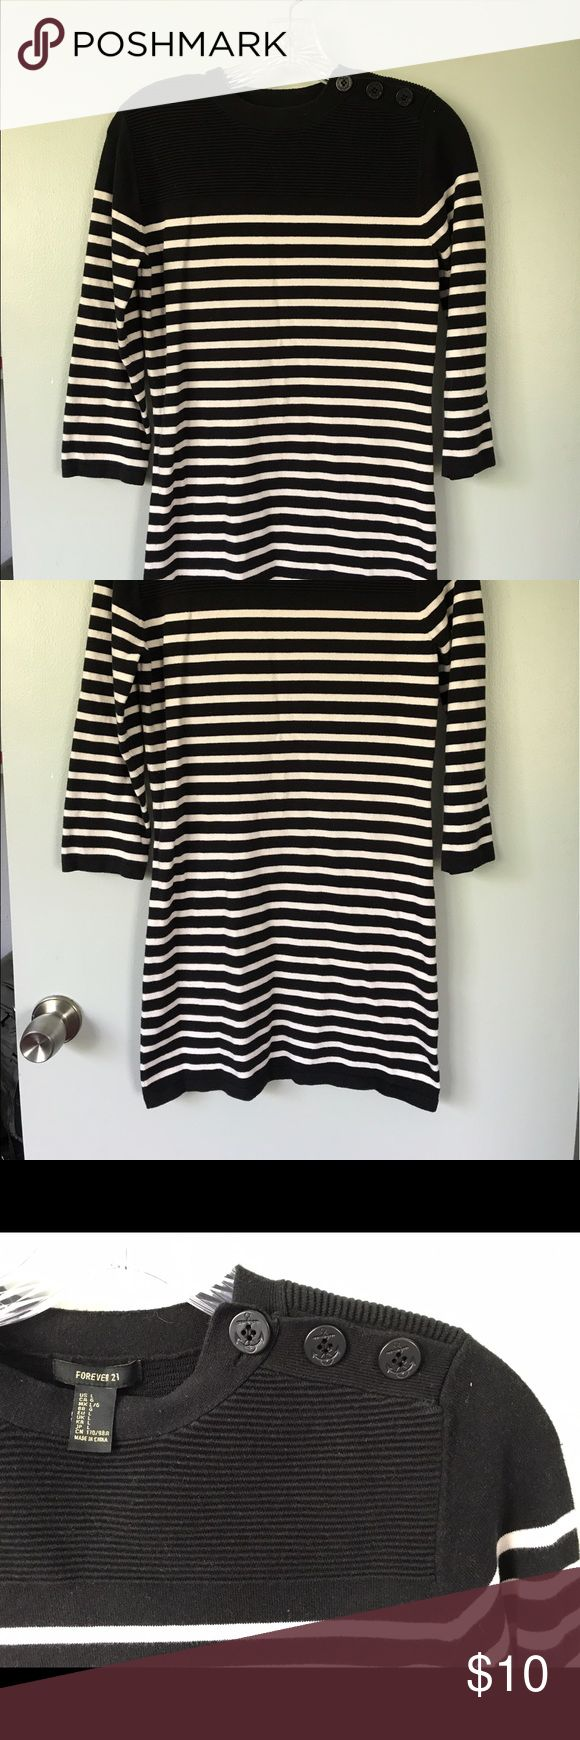 Nautical Sweater Dress This Forever 21 sweater dress has cute Nautical details. The buttons along the shoulder are the perfect touch! This dress is great with a pair of leggings and cute knee high boots! Size says Large, fits more like a Small. Forever 21 Dresses Long Sleeve